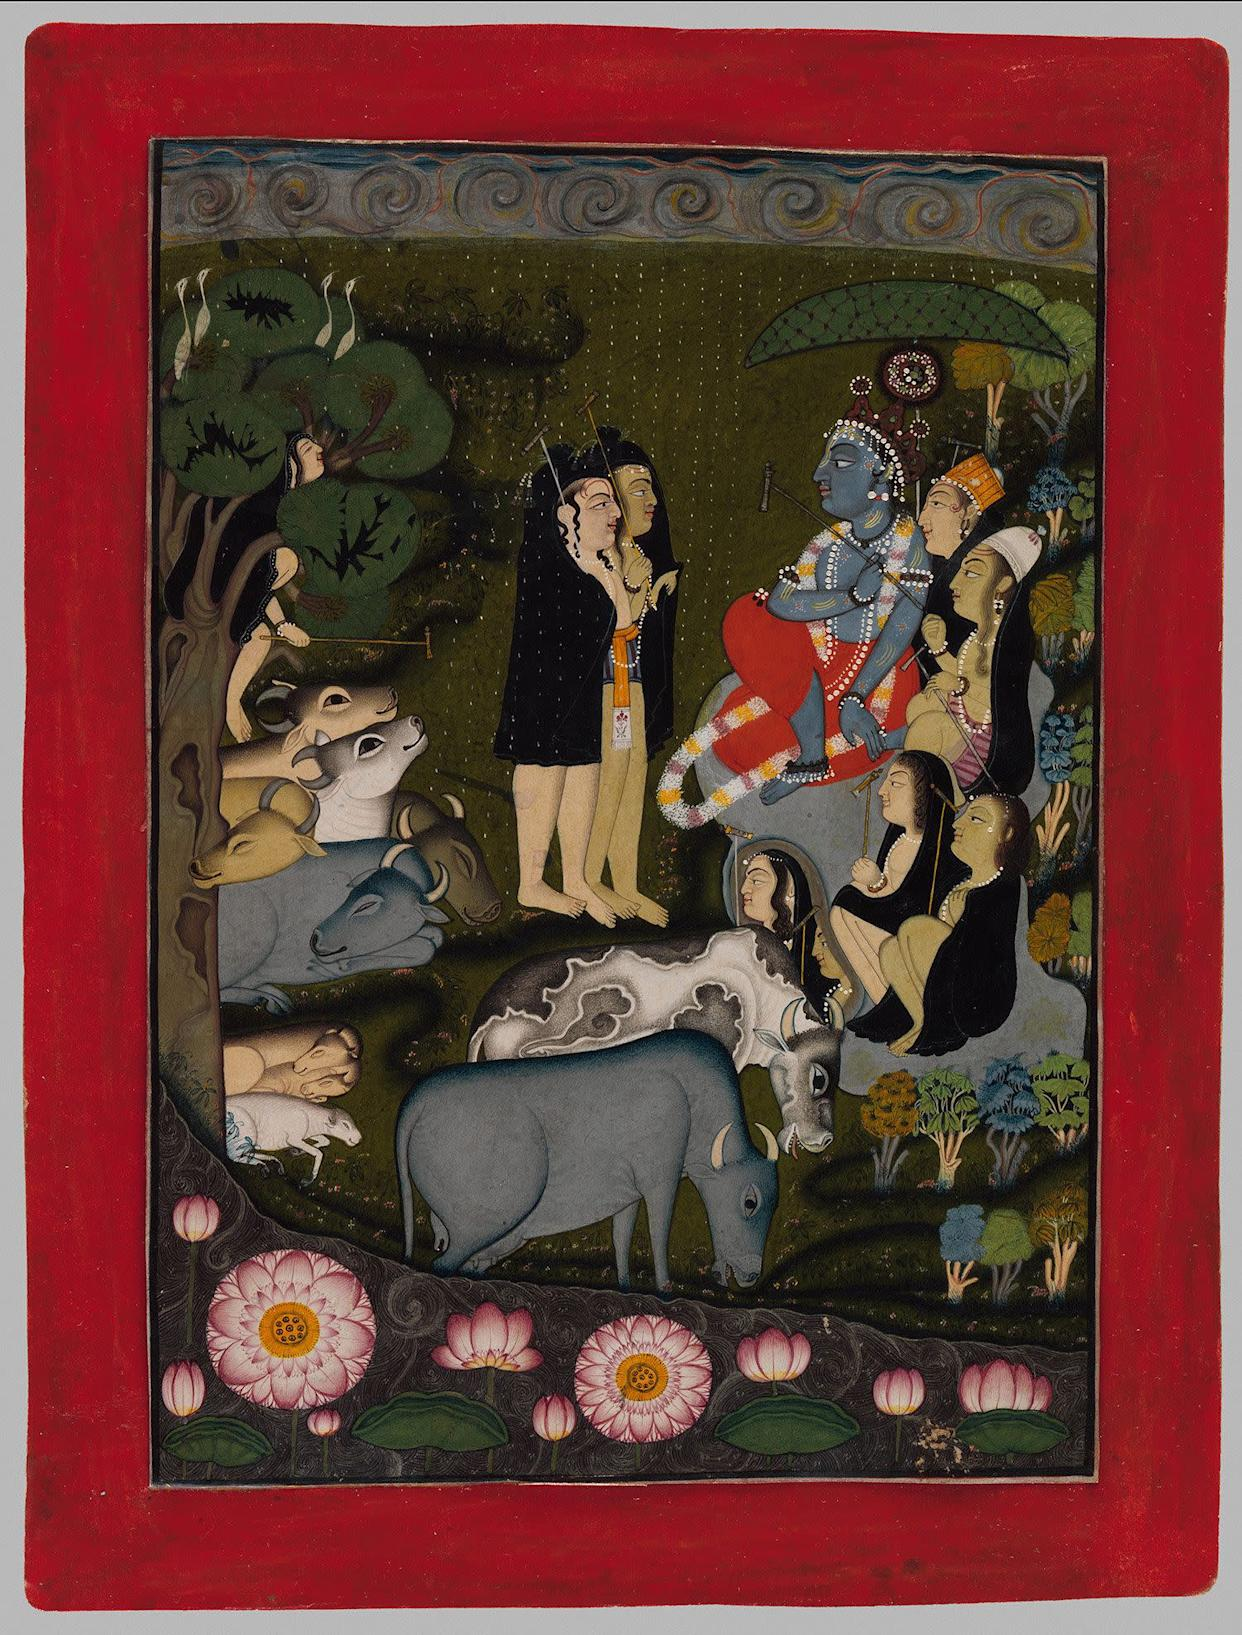 """""""Krishna and the Gopas (Cowherders) Huddle in theRain.""""Attributed to the artist known as the Master of theSwirling Skies (active second quarter of 18th century)Punjab Hills, kingdom of Jammu, ca. 1725–50.Opaque watercolor and silver (now tarnished) onpaper; modern border; painting 8 3/8 x 5 7/8 in.Promised Gift of the Kronos Collections, 2015"""